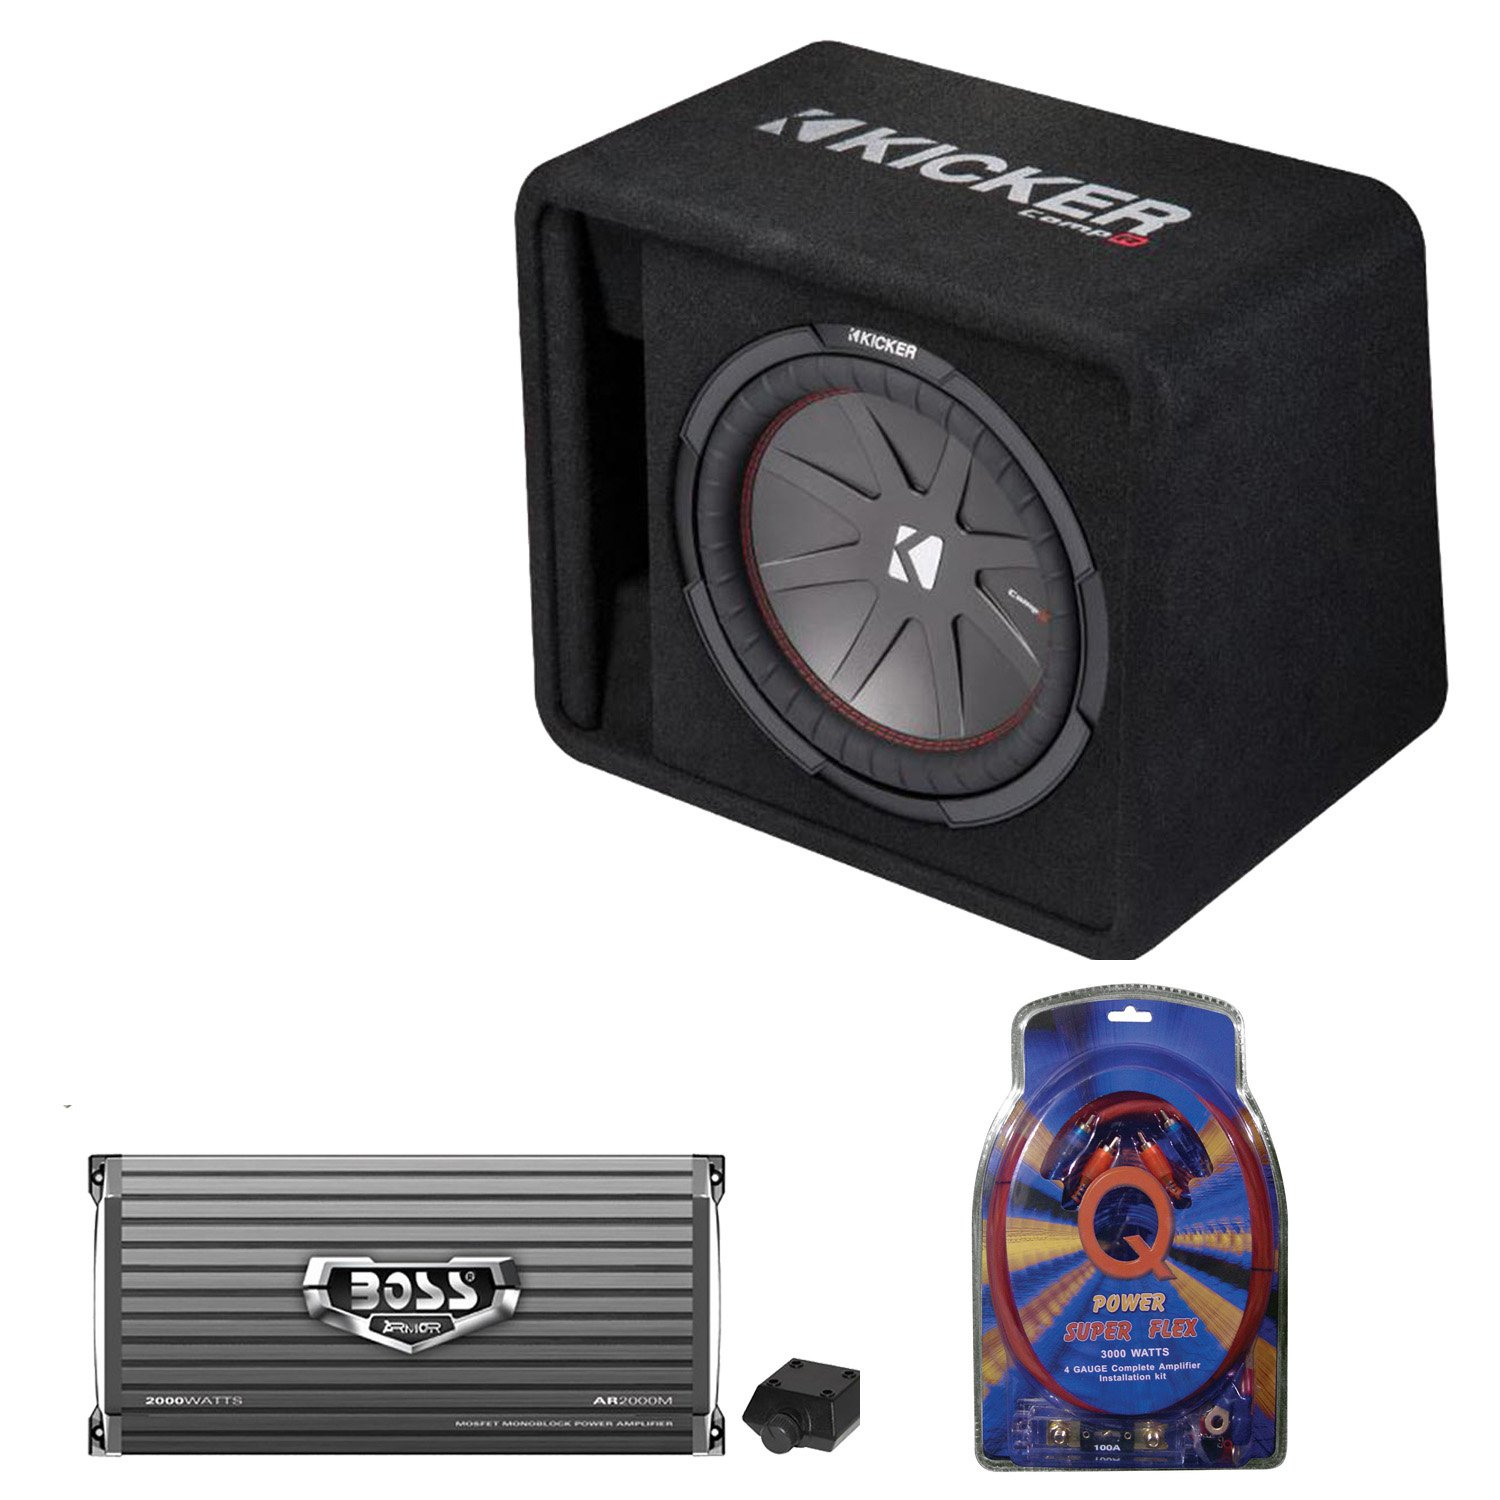 Kicker 12 Inch 1000W Subwoofer Box + 2000W Mono Amplifier, Remote + Wiring Kit